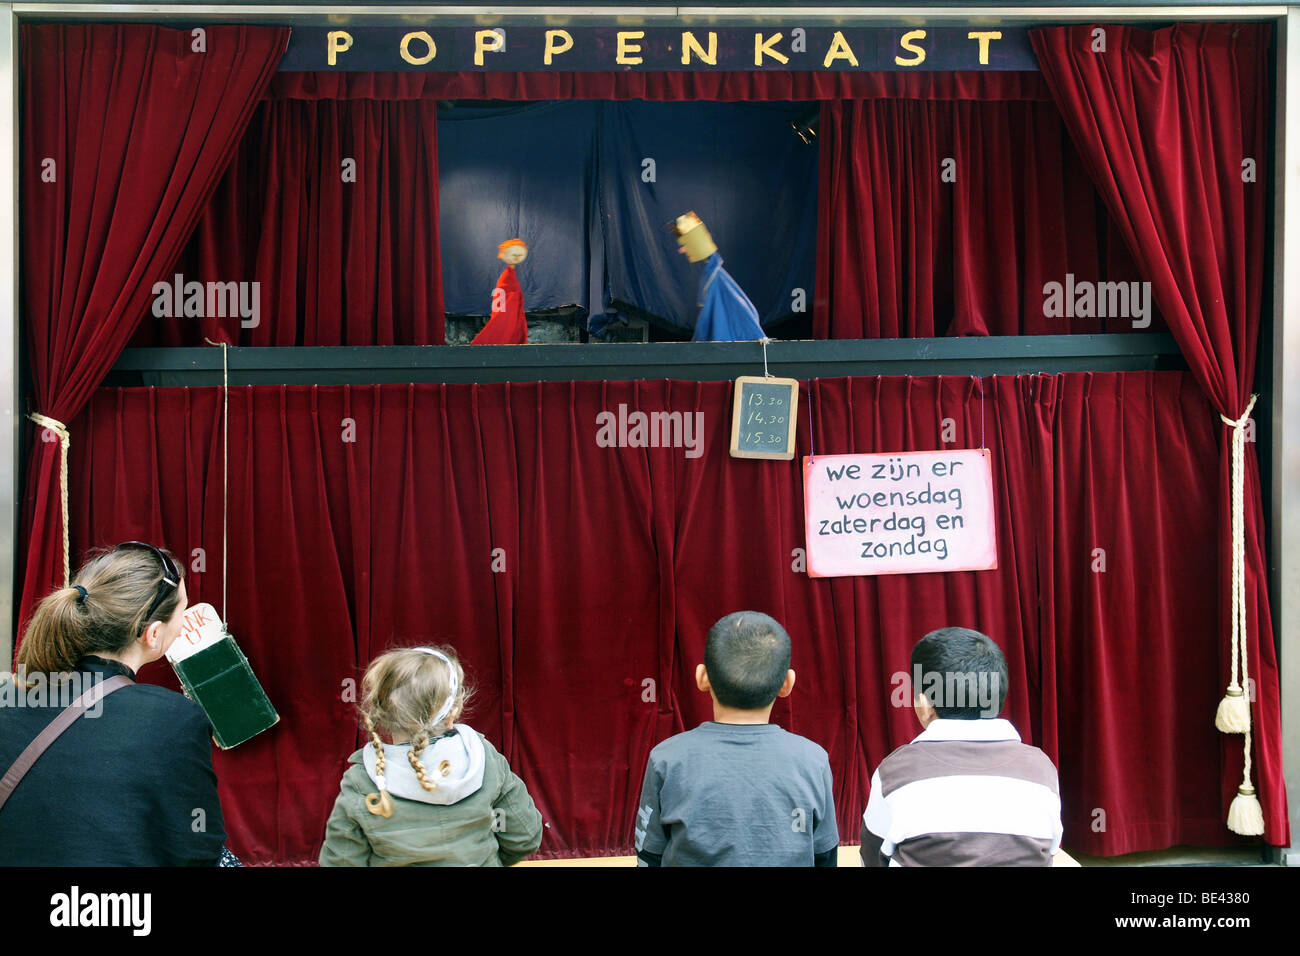 Stock photo dramatic red old fashioned elegant theater stage stock - Puppet Theatre Stage In Rotterdam Streets Outdoors With Children Watching The Play Having Red Curtains